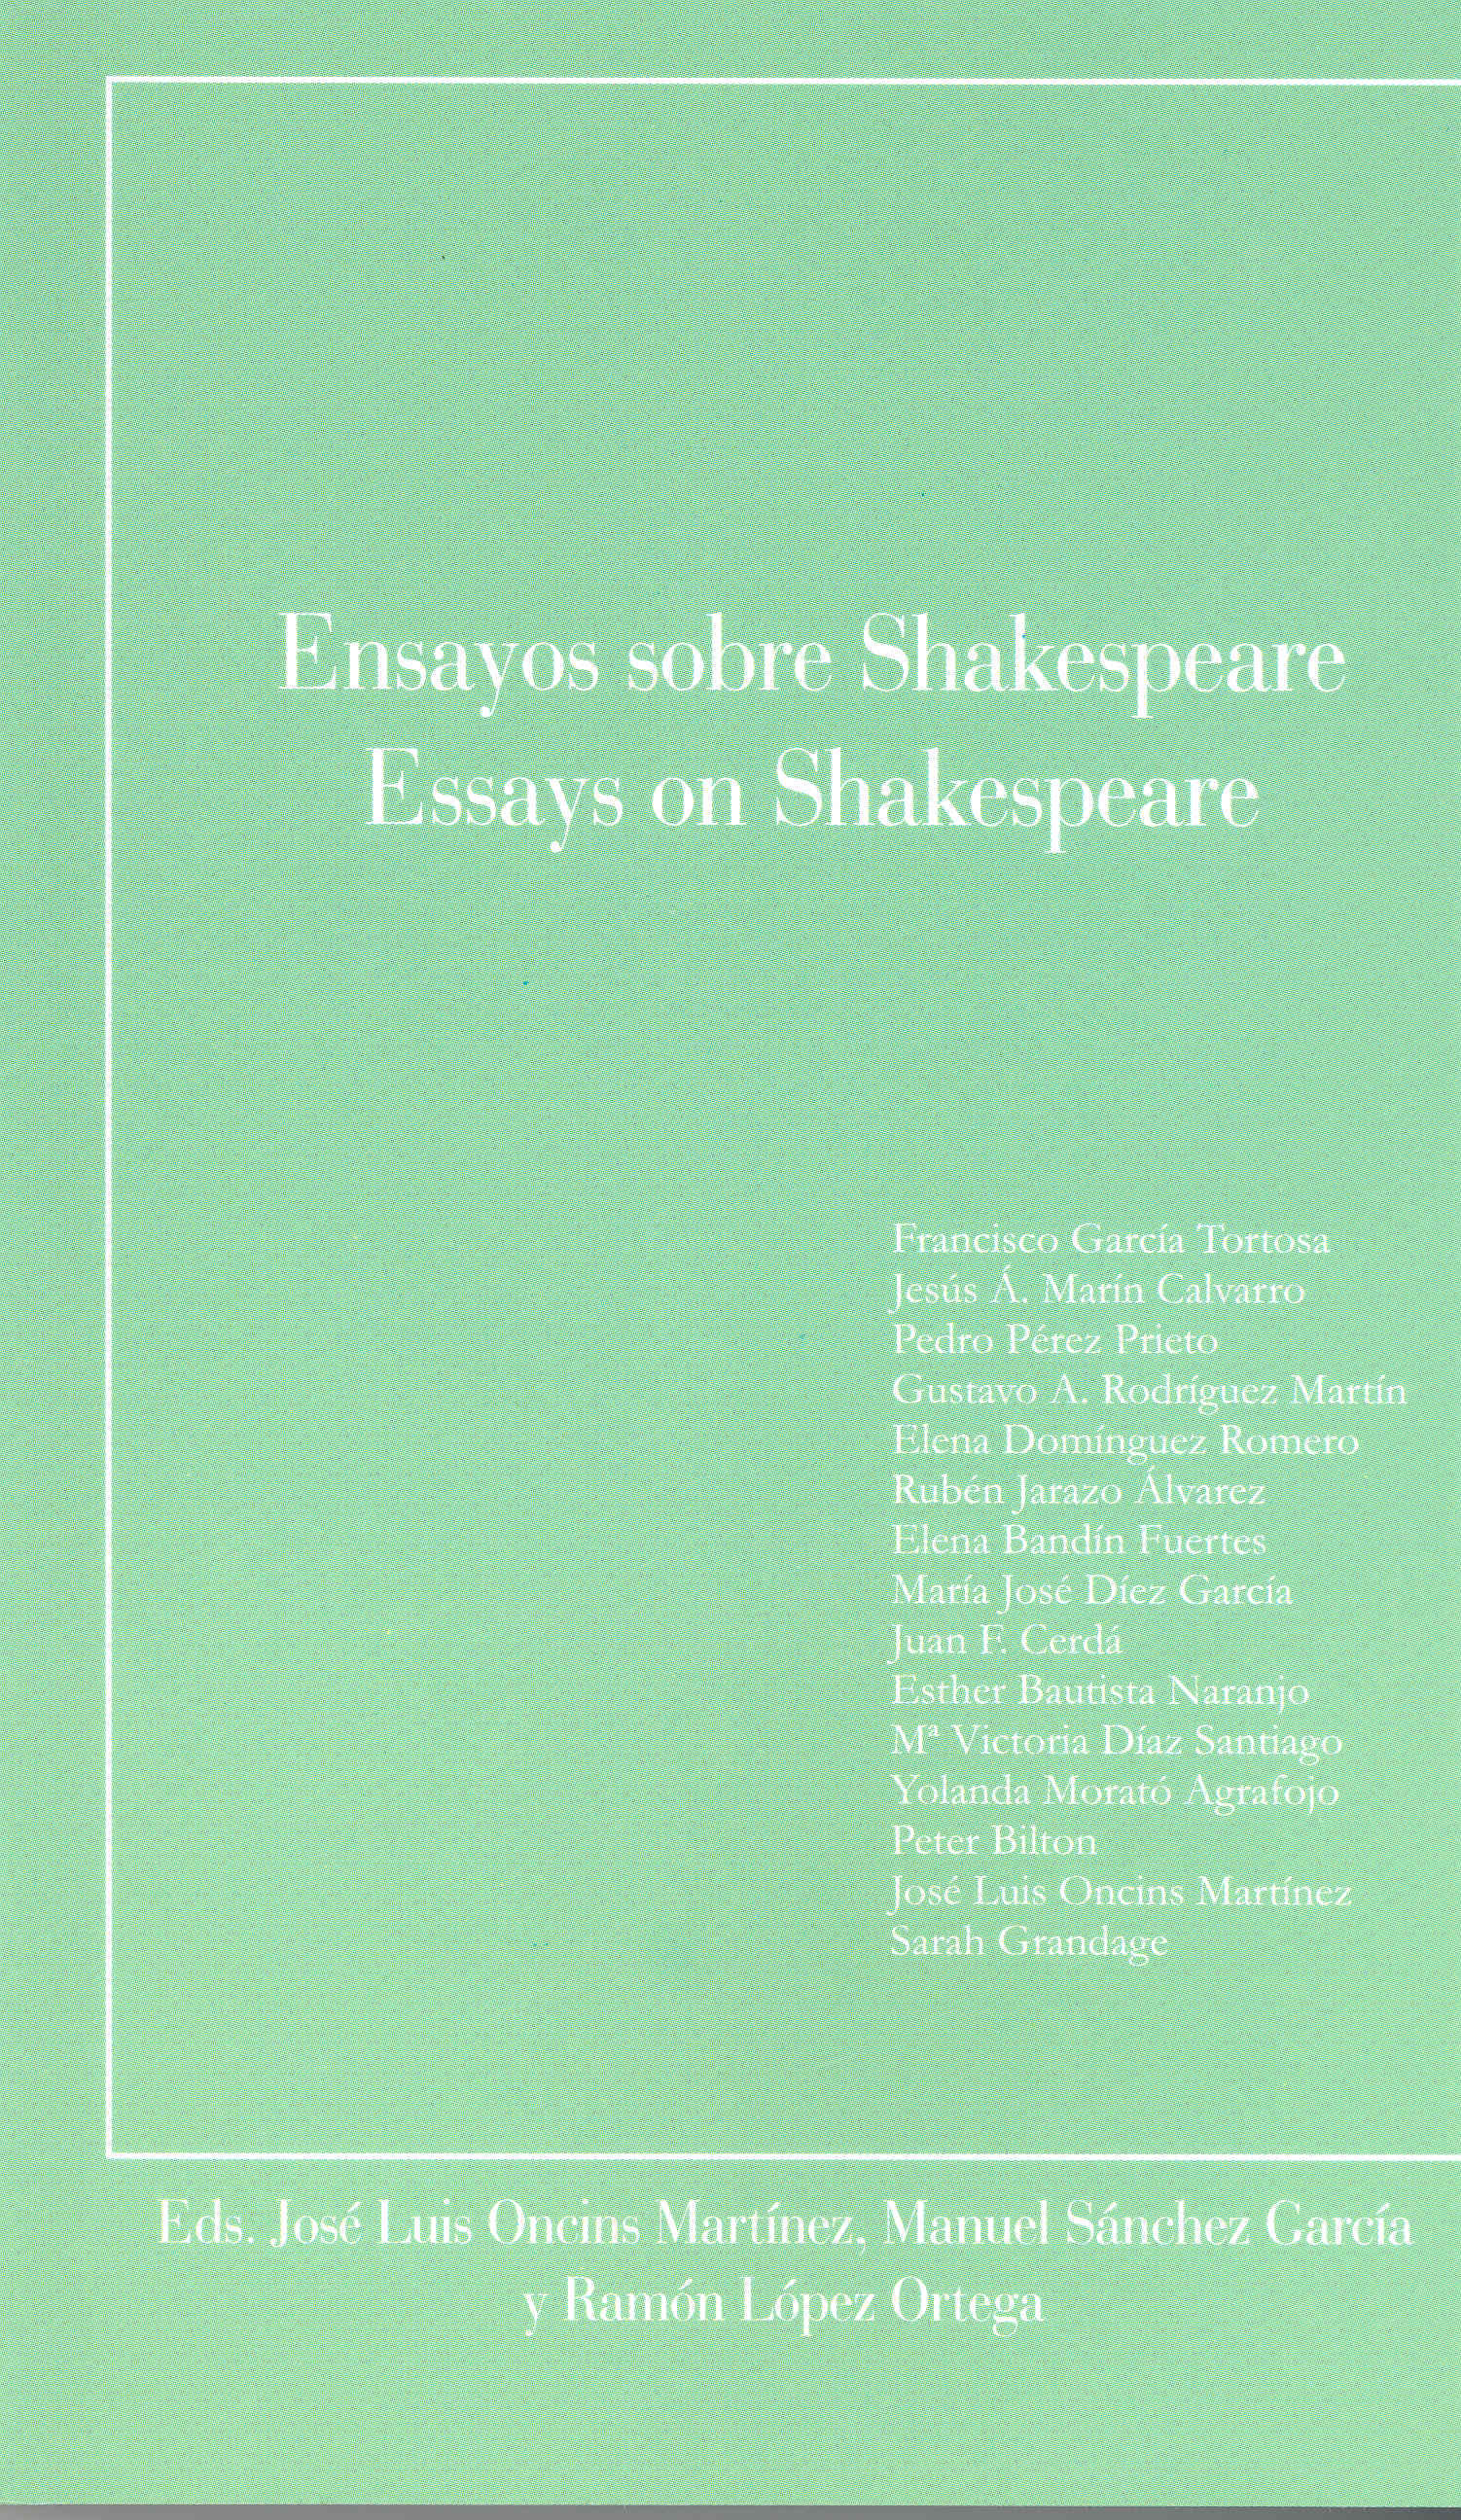 ensayos sobre shakespeare essays on shakespeare jose luis ensayos sobre shakespeare essays on shakespeare jose luis oncins martinez 9788477239321